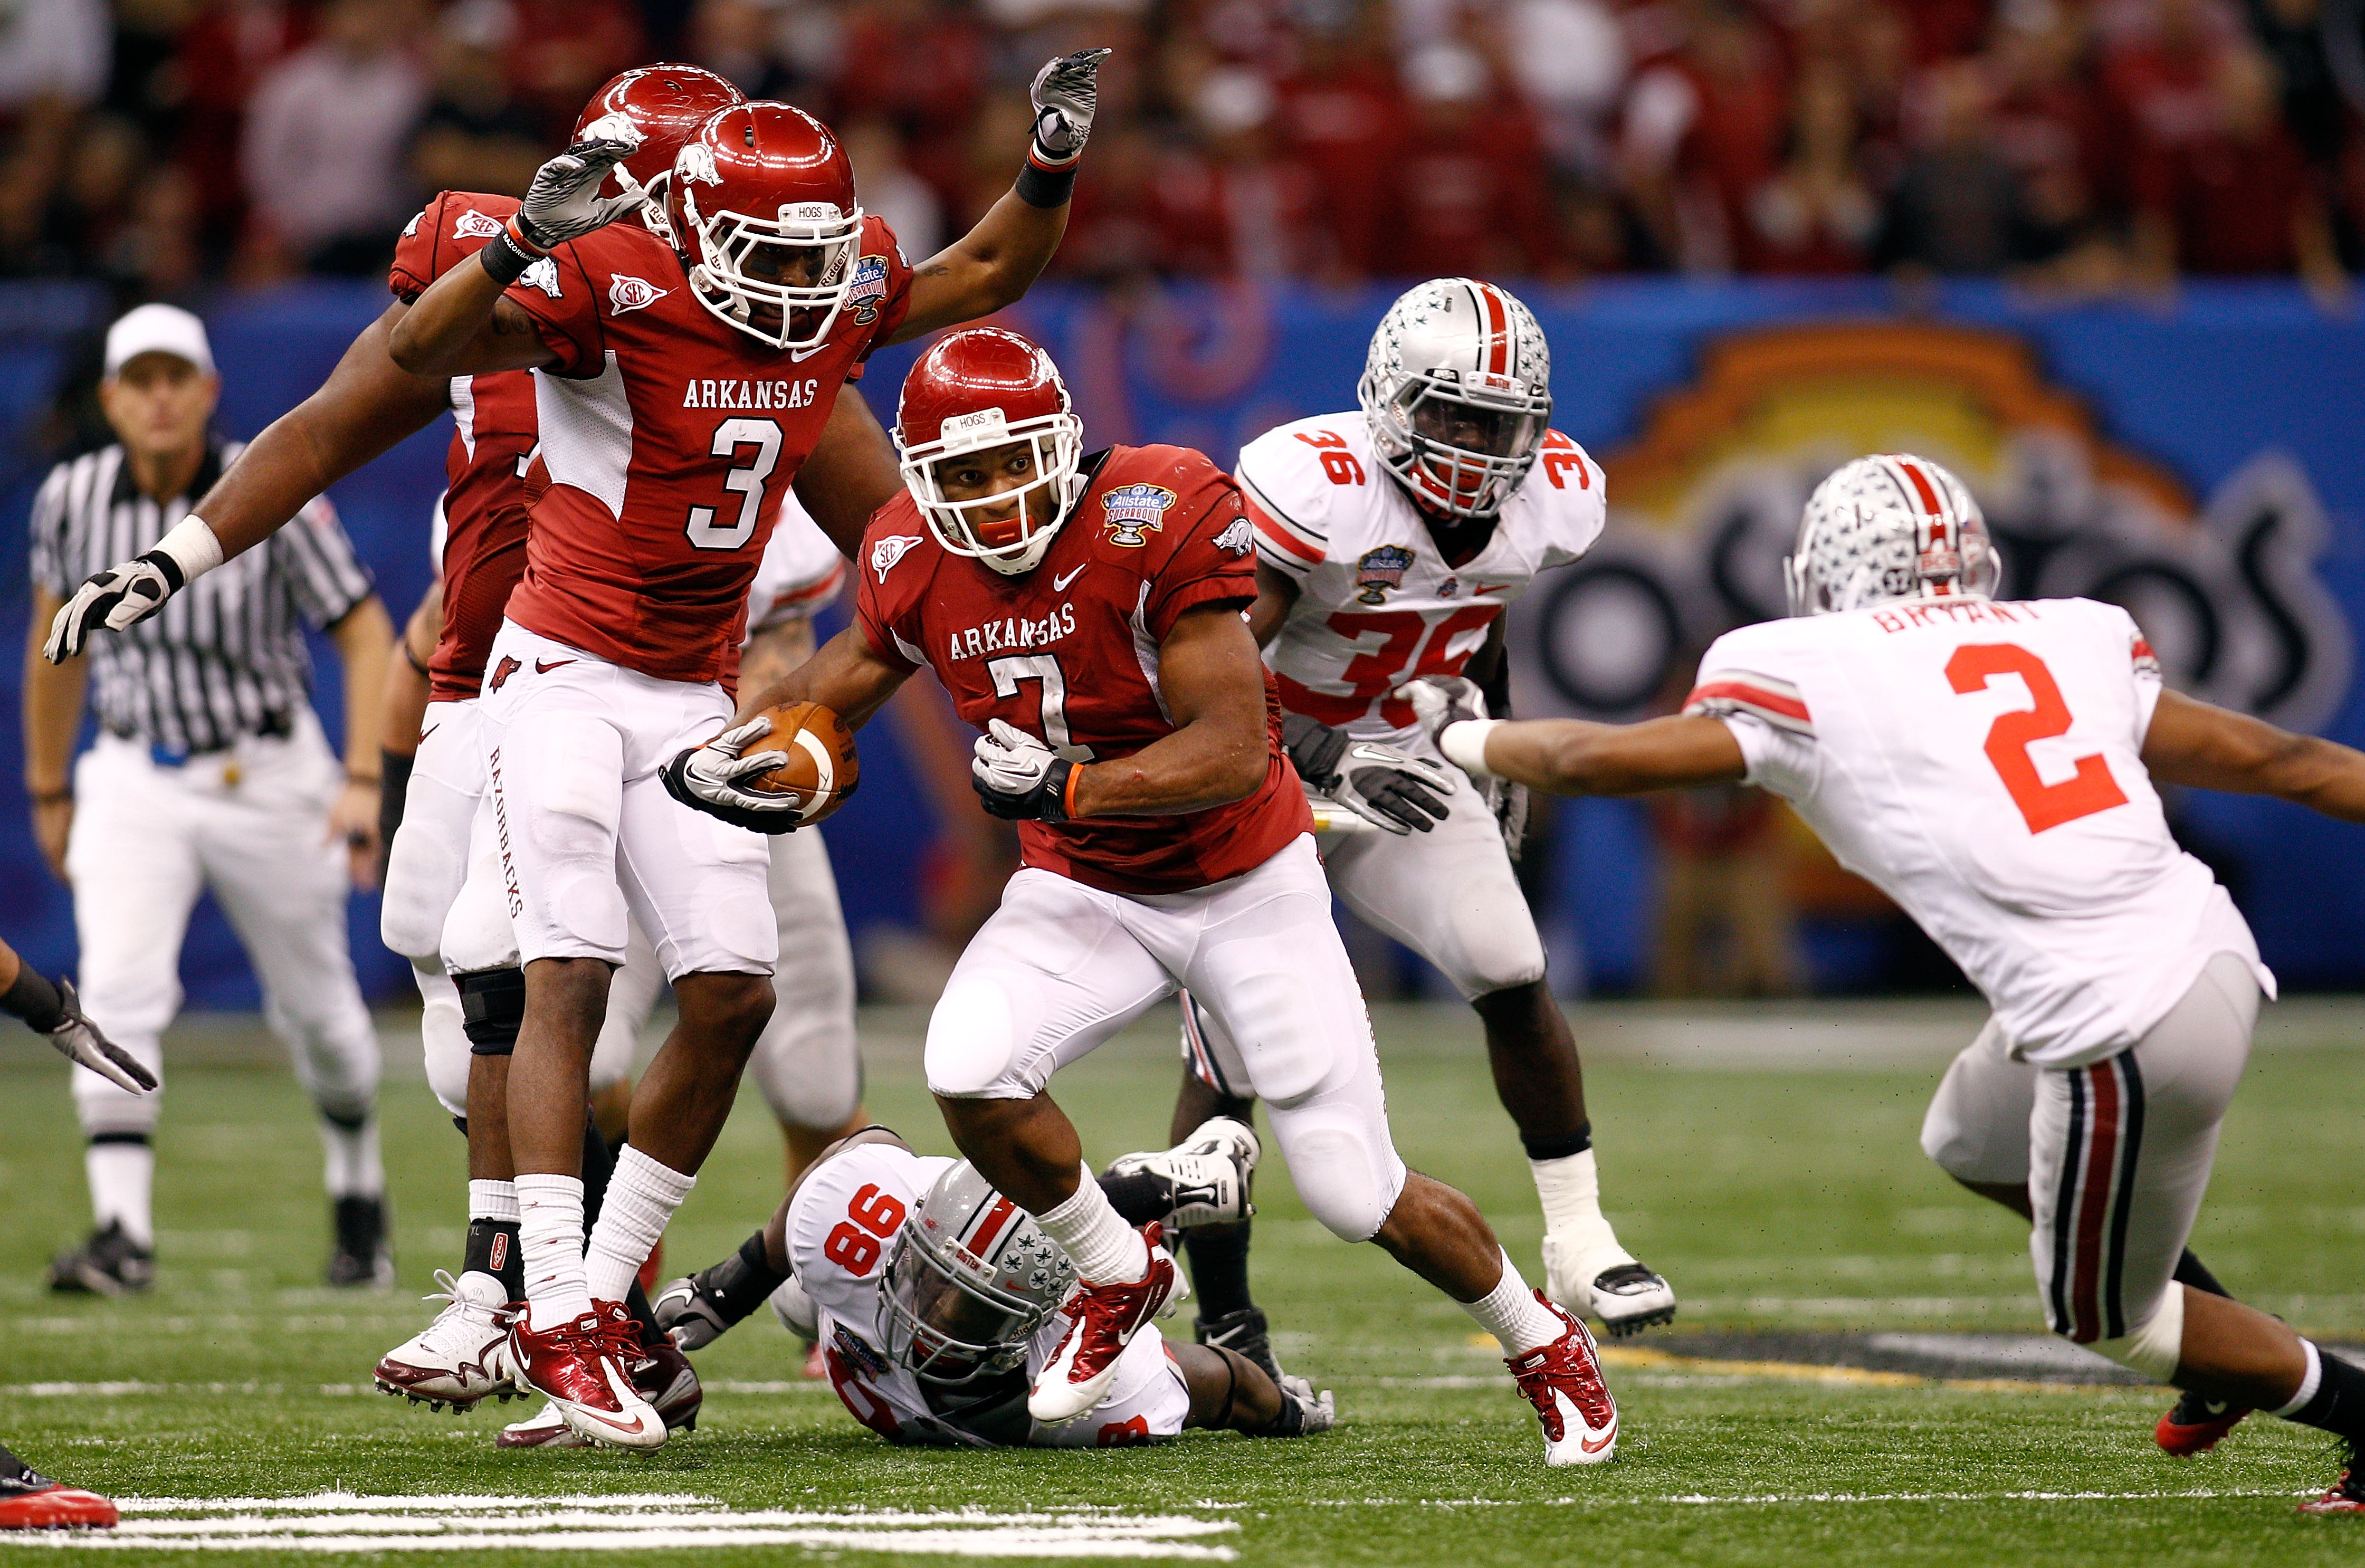 NEW ORLEANS, LA - JANUARY 04:  Knile Davis #7 of the Arkansas Razorbacks runs the ball in the second half against the Ohio State Buckeyes during the Allstate Sugar Bowl at the Louisiana Superdome on January 4, 2011 in New Orleans, Louisiana.  (Photo by Ch